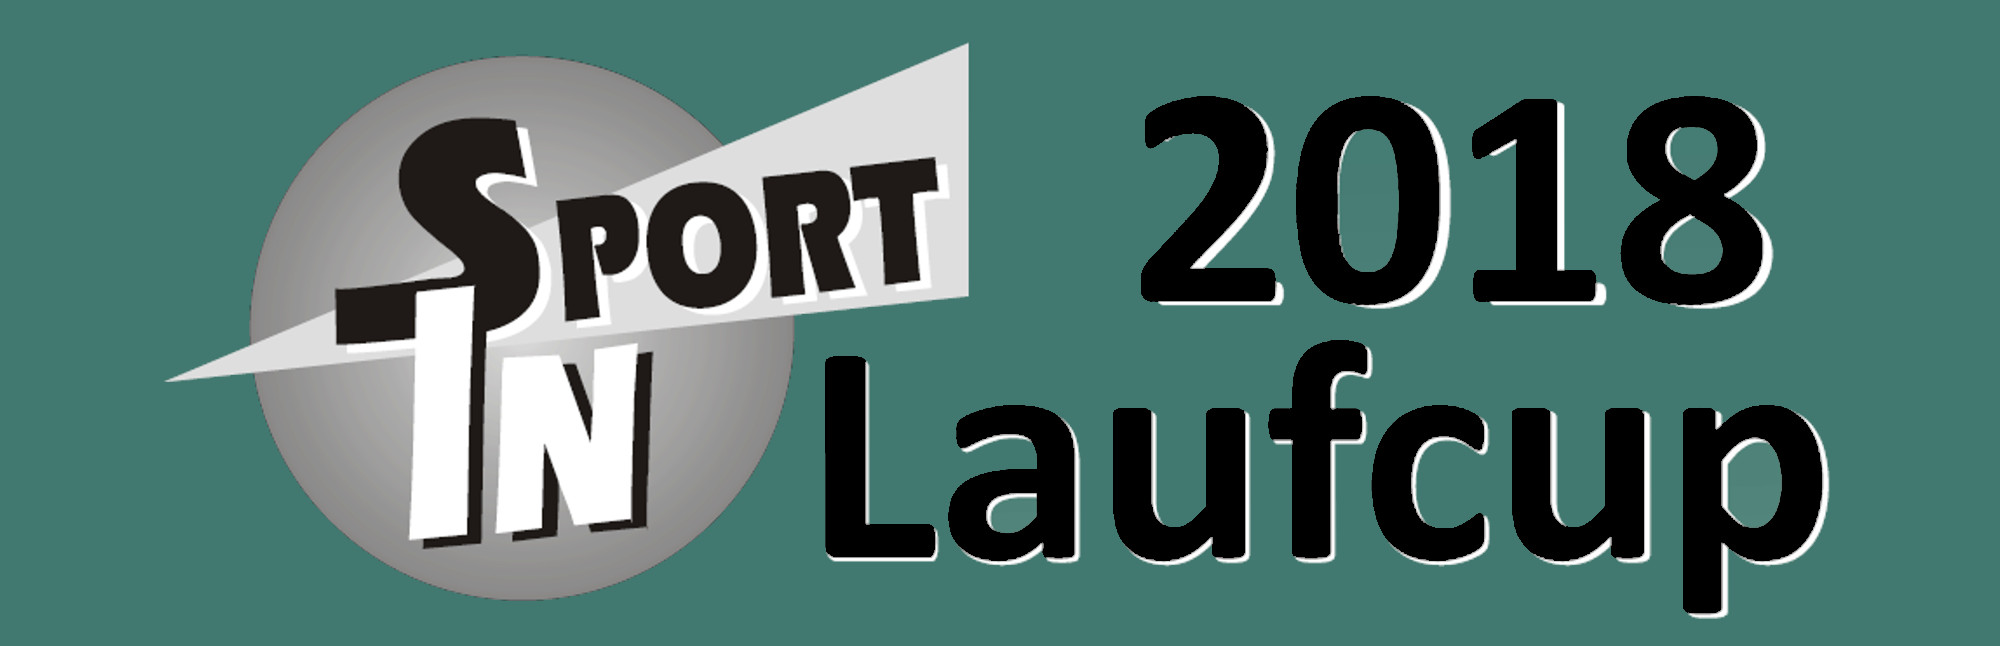 SPORT IN Laufcup